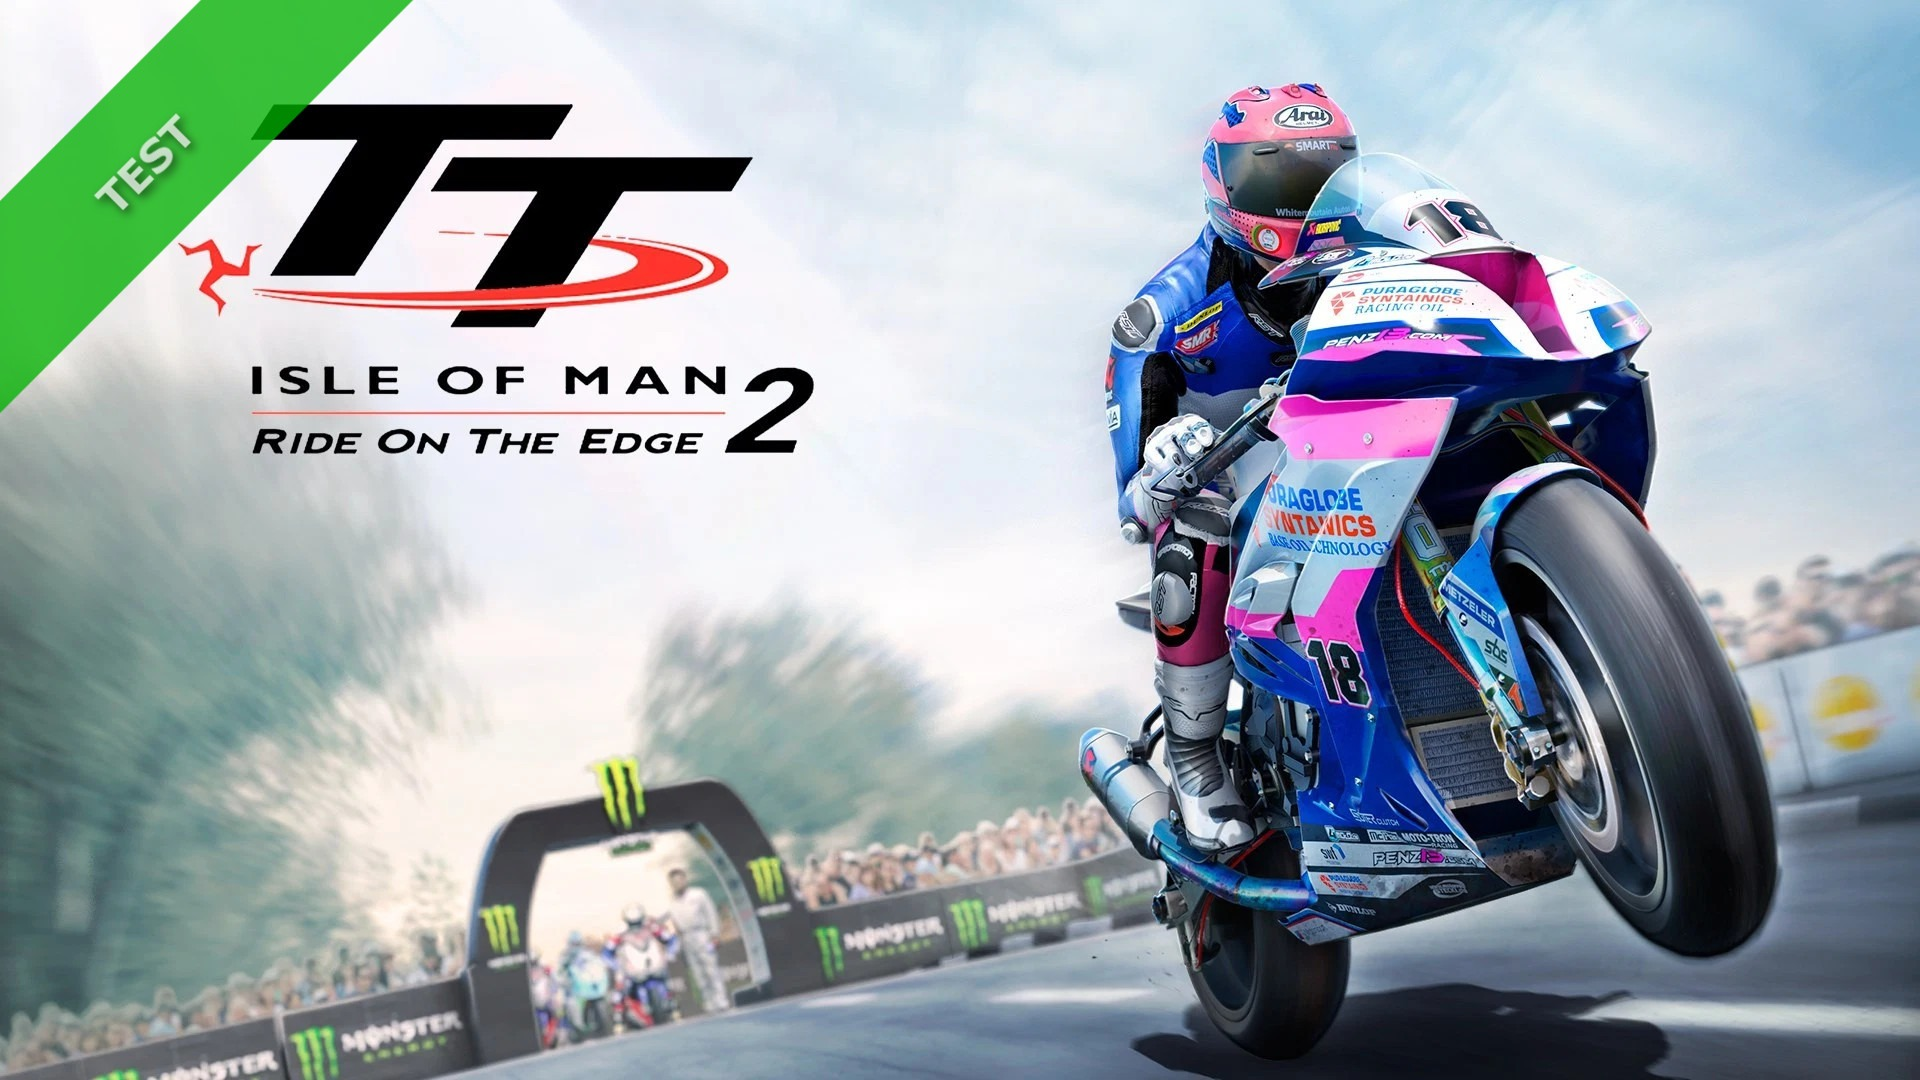 TEST TT Isle of Man 2 XWFR